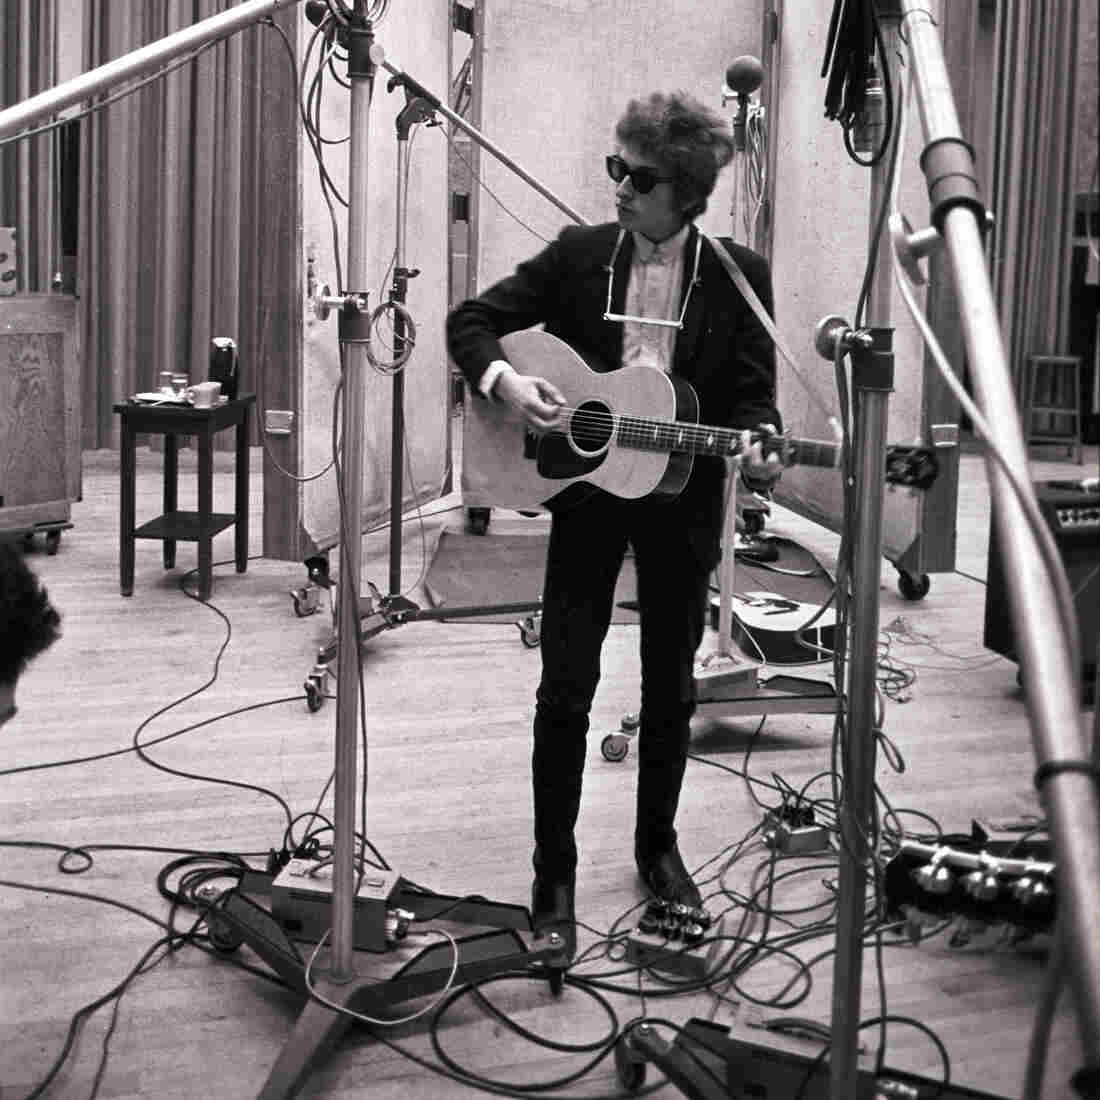 Bob Dylan's new compilation, The Cutting Edge 1965-1966: The Bootleg Series Vol. 12, comes out Nov. 5.